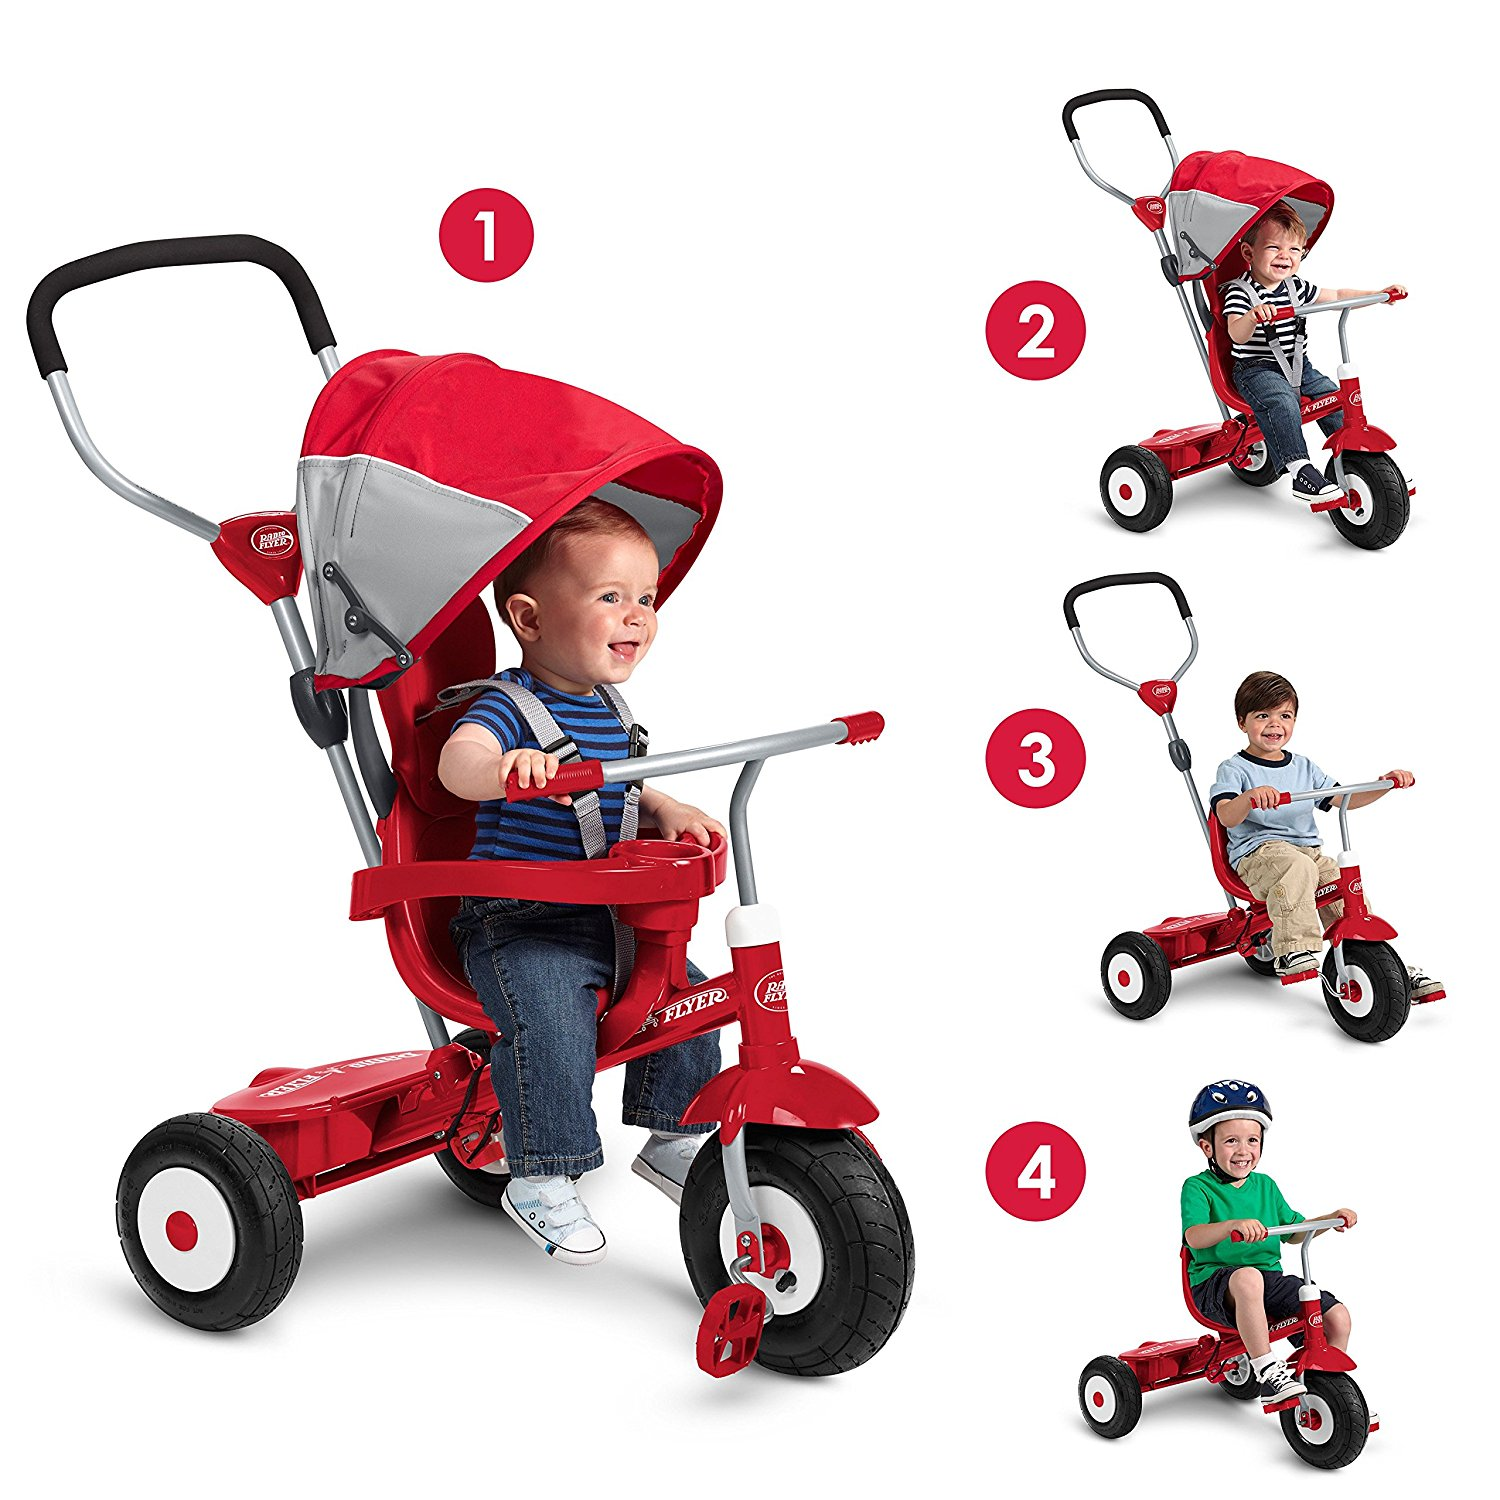 The Radio Flyer baby Scooter